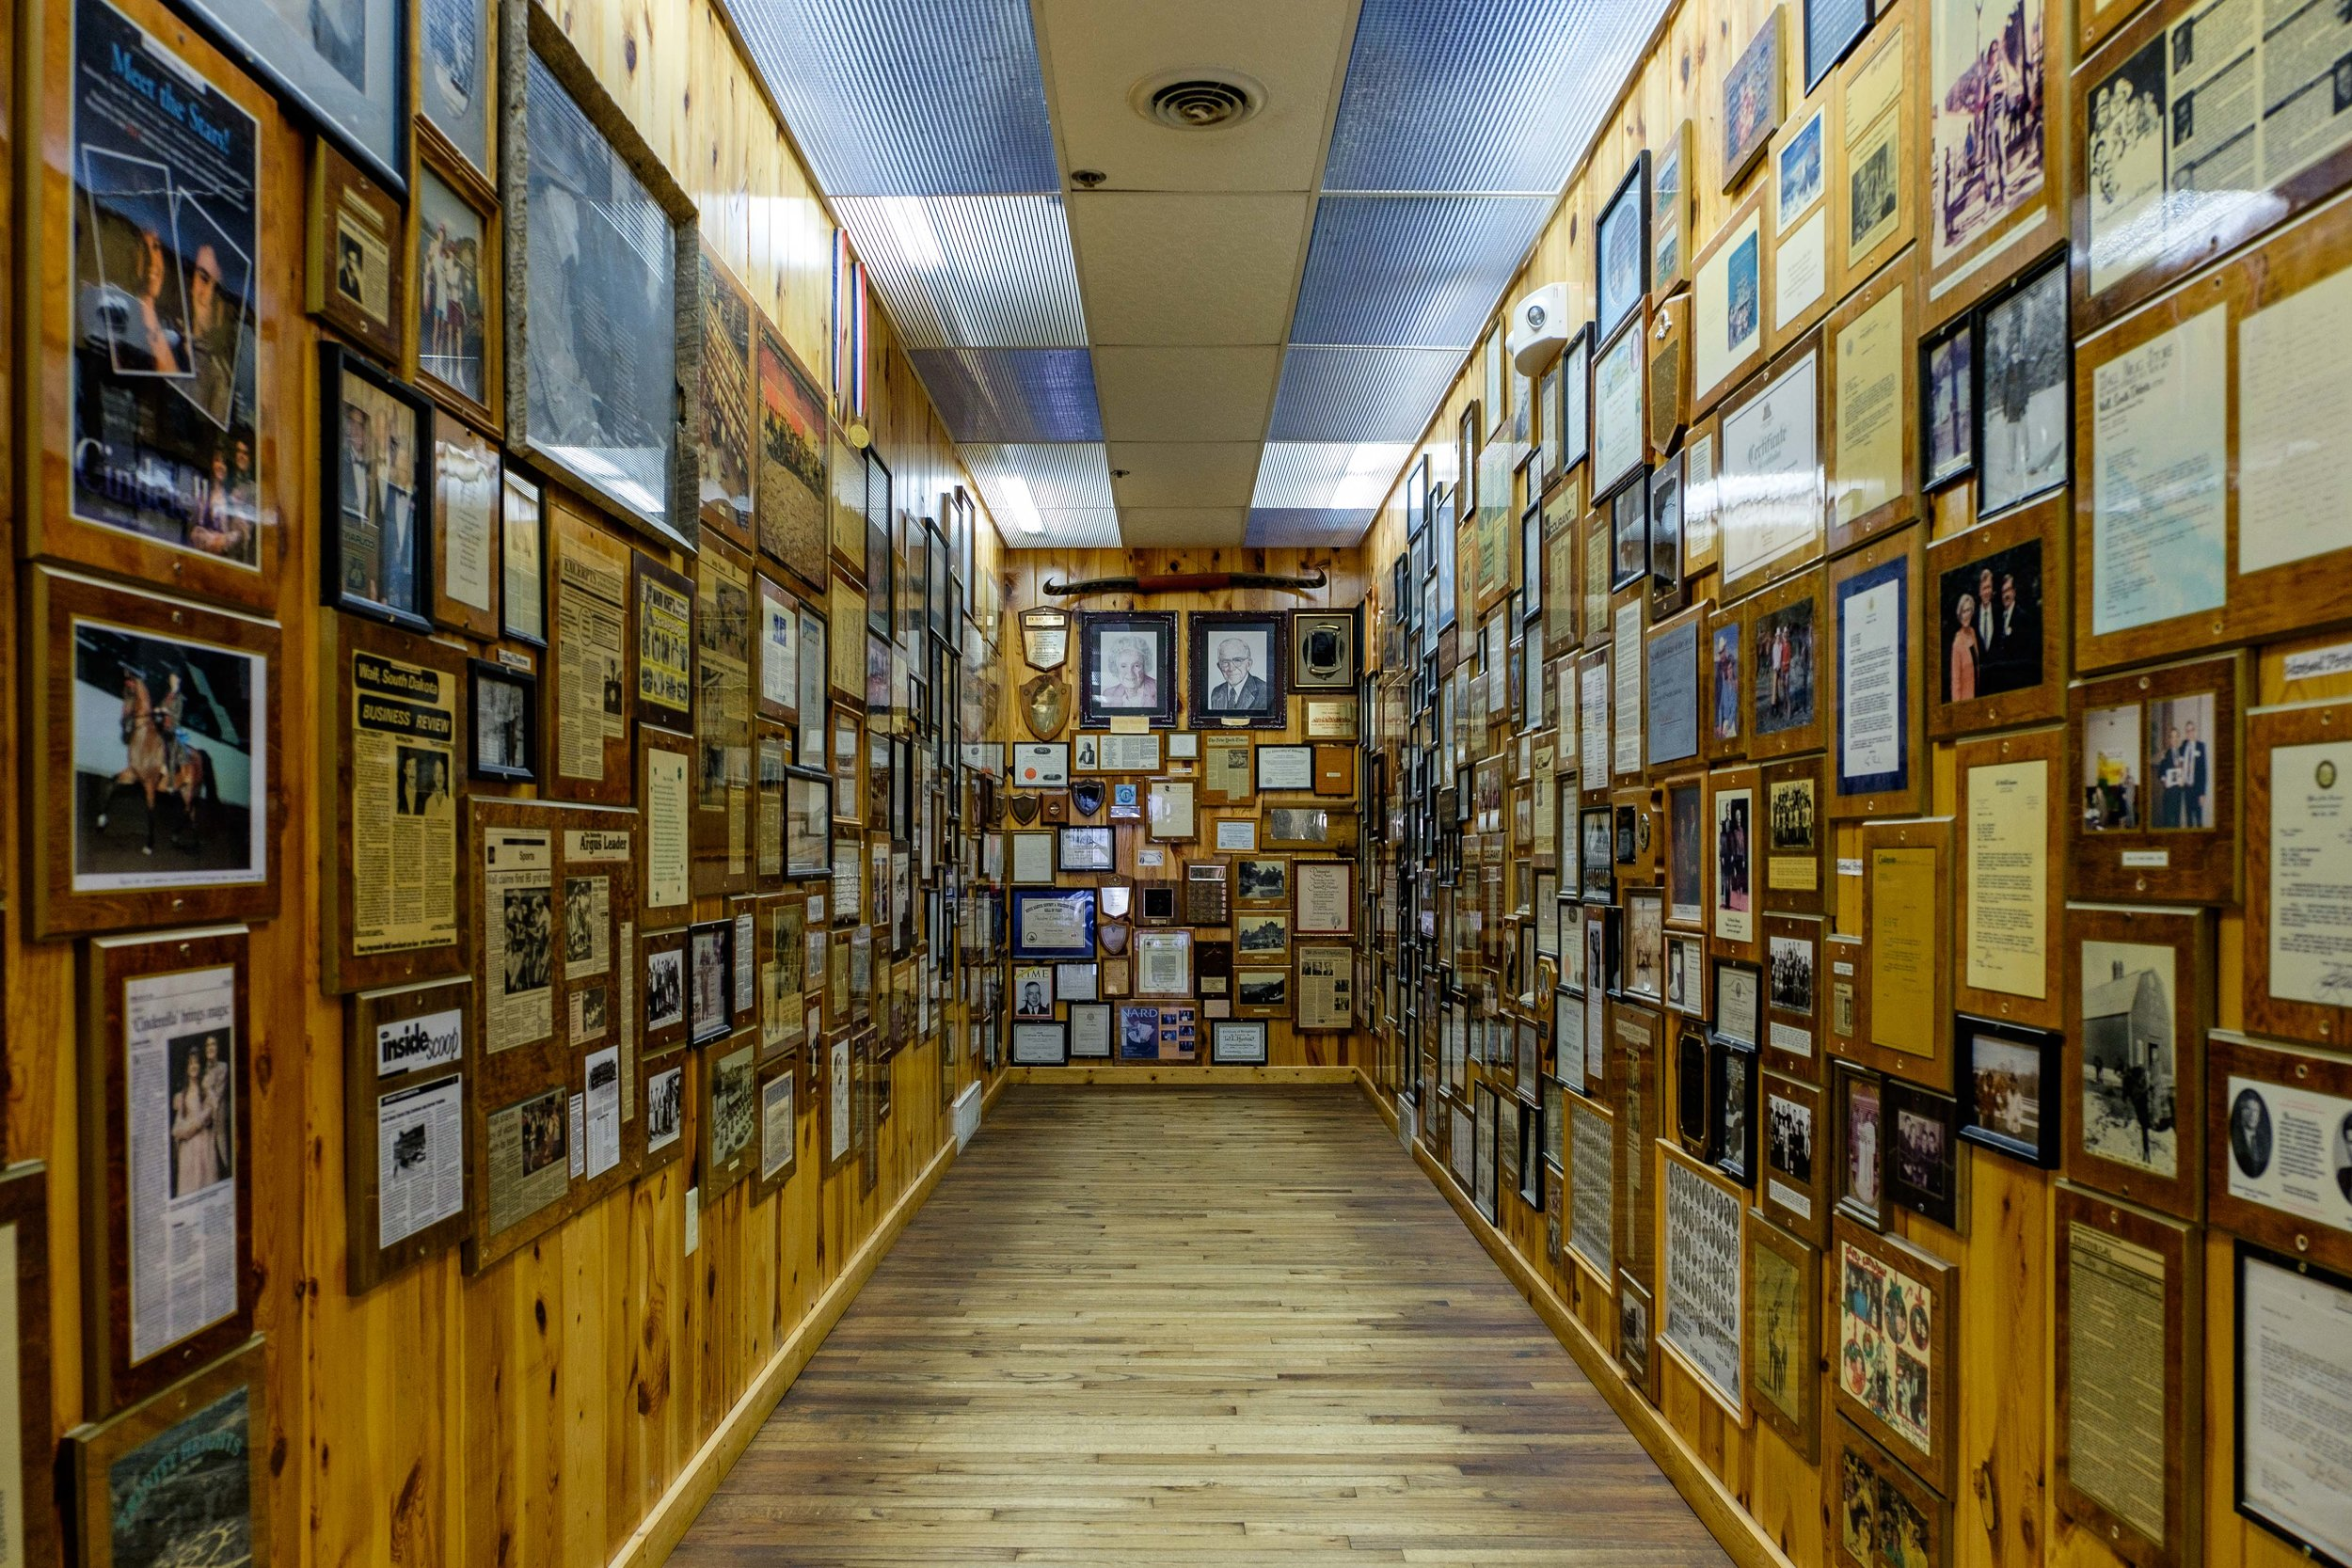 Wall Drug is a place of legend and a glimpse through time. Stef's grandma used to paint murals on the walls outside of the store!